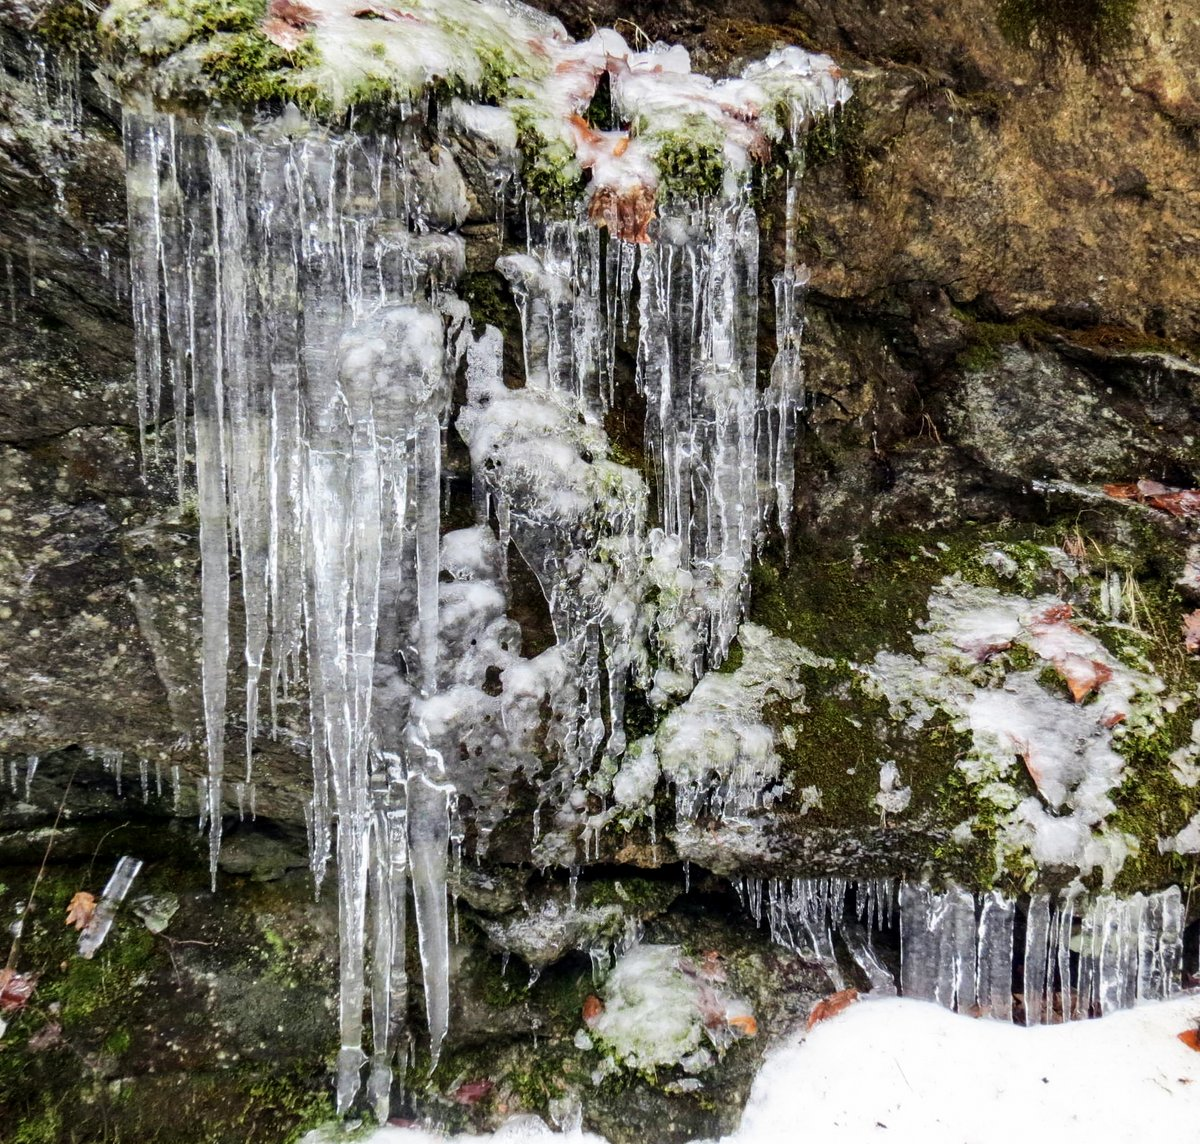 11. Icicles